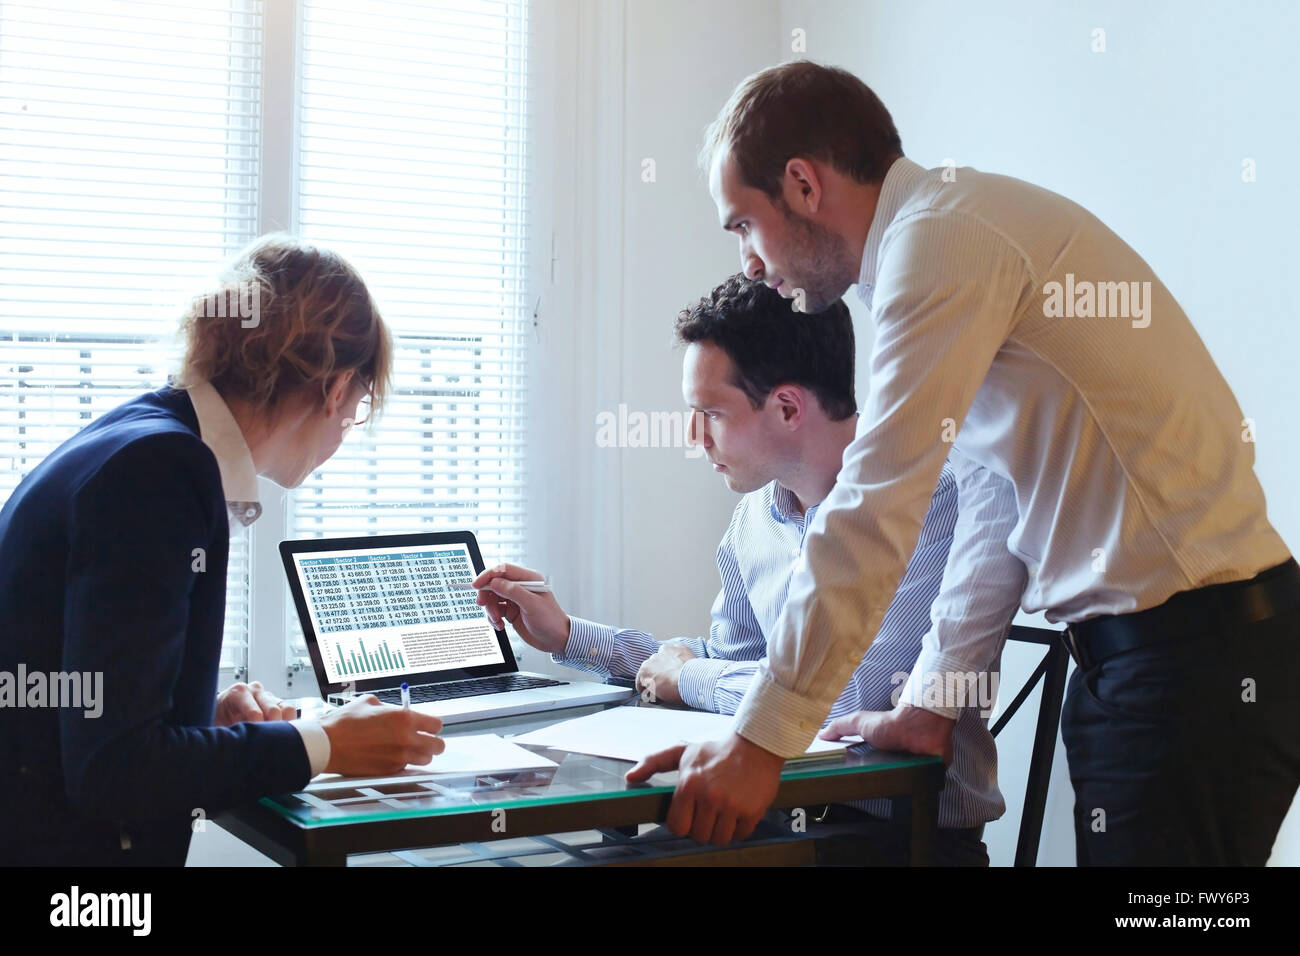 Teamarbeit, Business-meeting, Teamarbeit im Finanzplan Stockbild